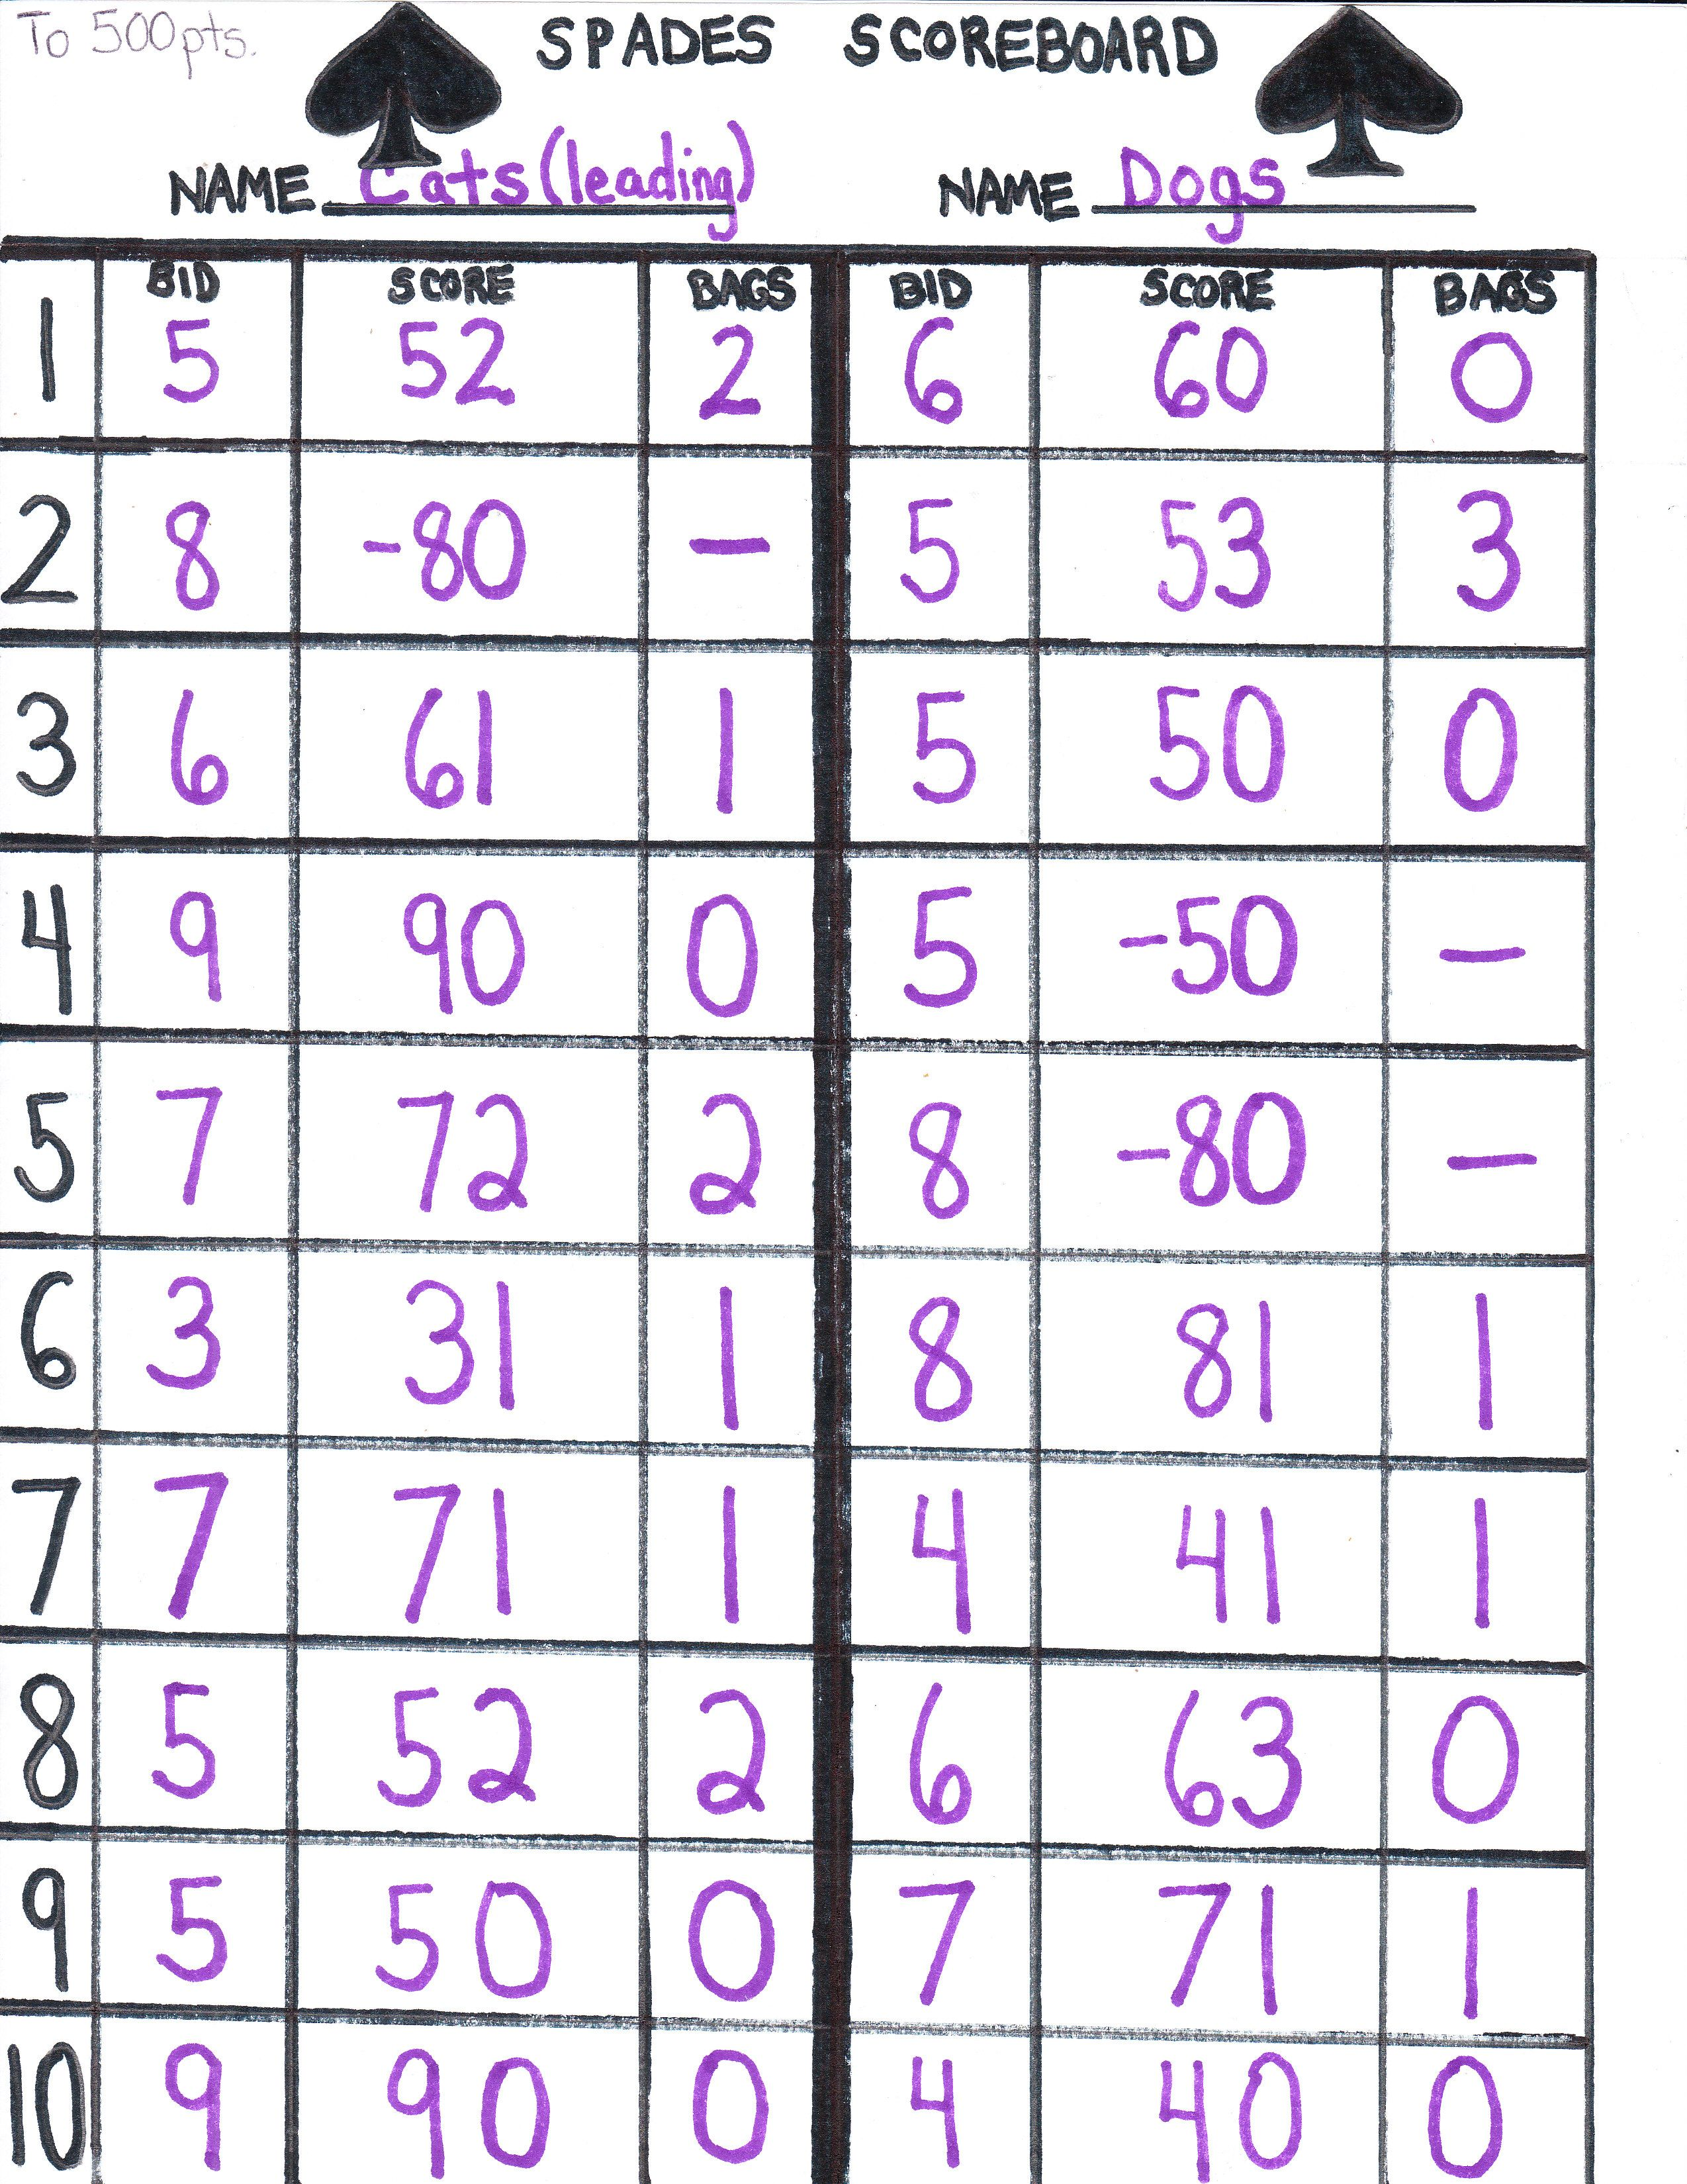 An example of a completed Spades Scoresheet